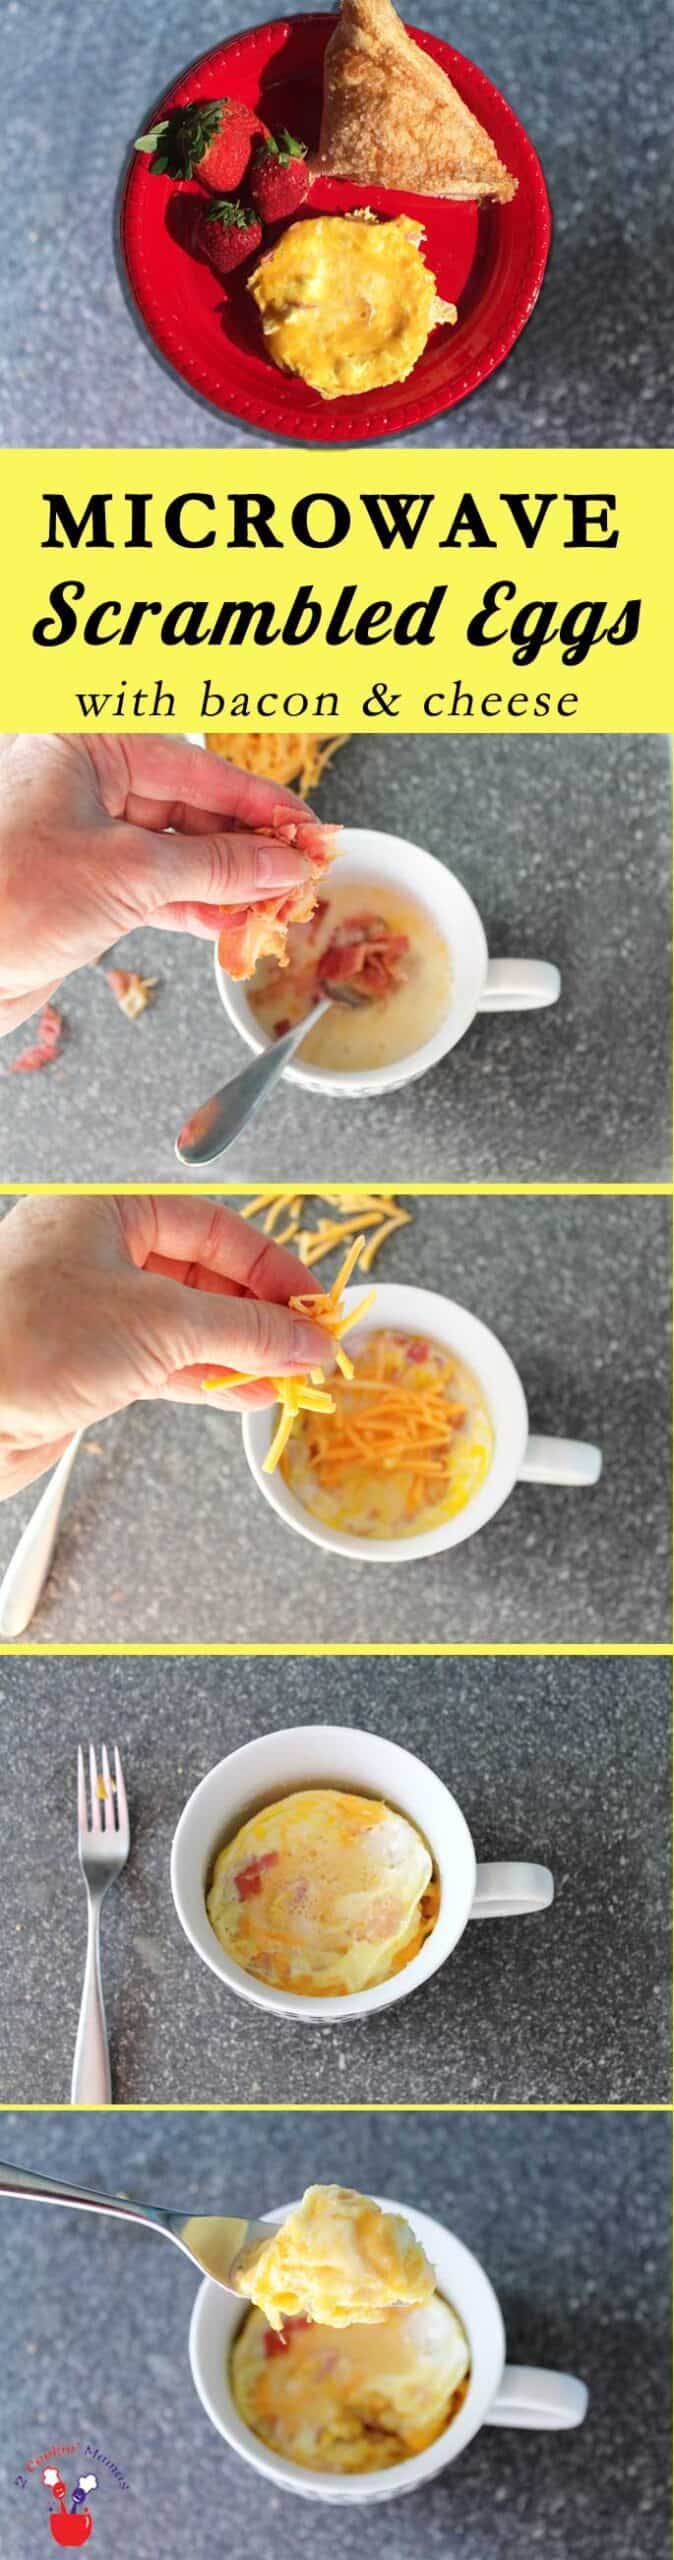 Quick and Easy Microwave Scrambled Eggs